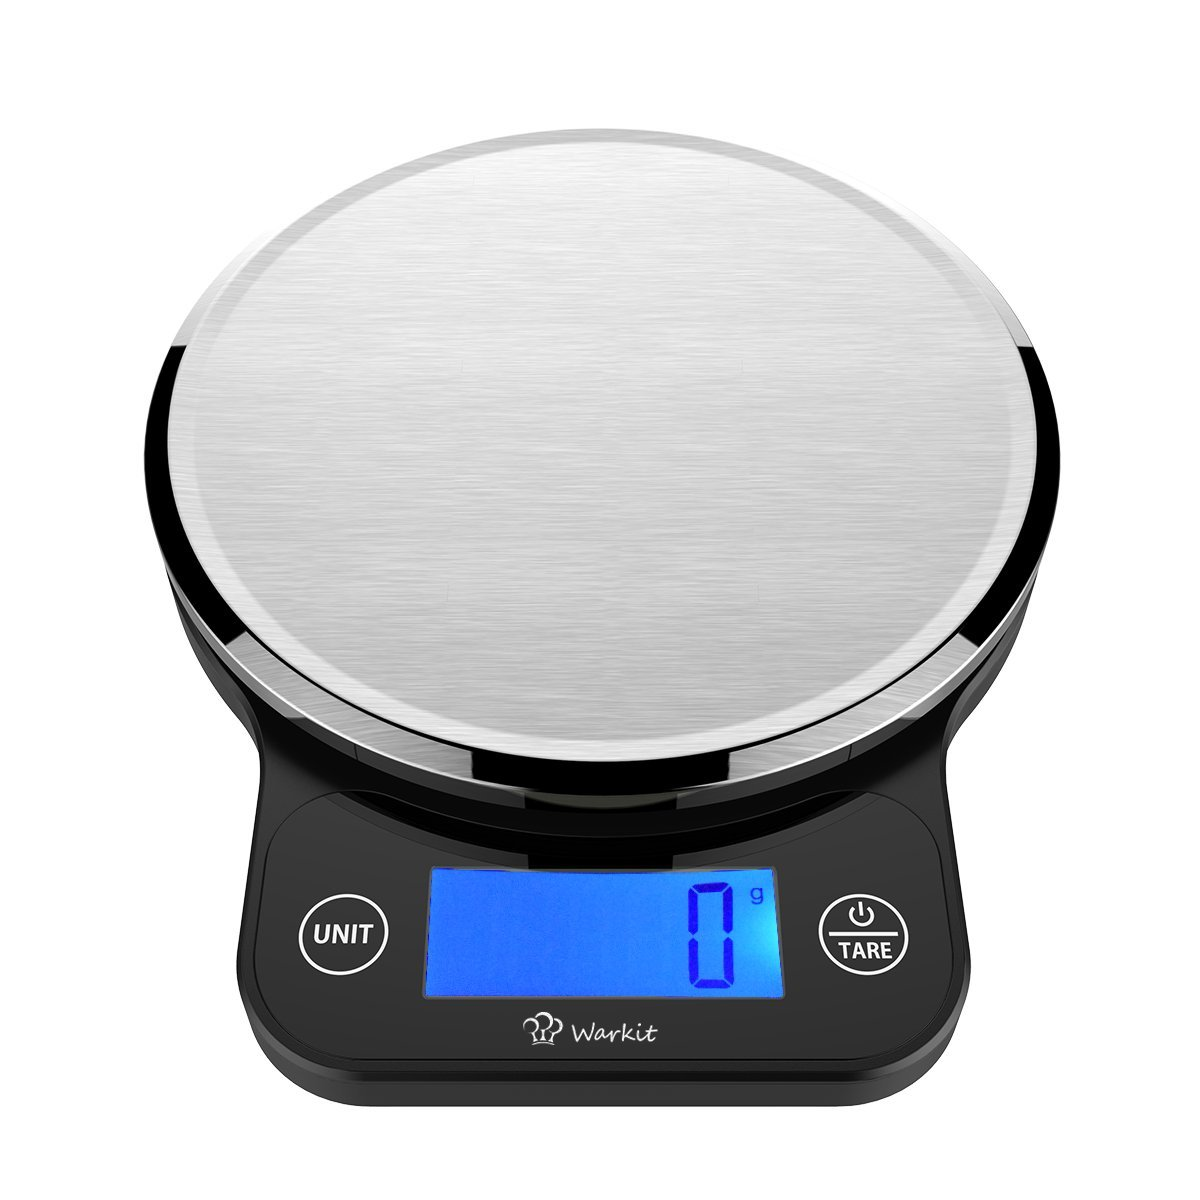 Warkit S2 Kitchen Scales Stainless Steel LCD Precise Tare Function ...